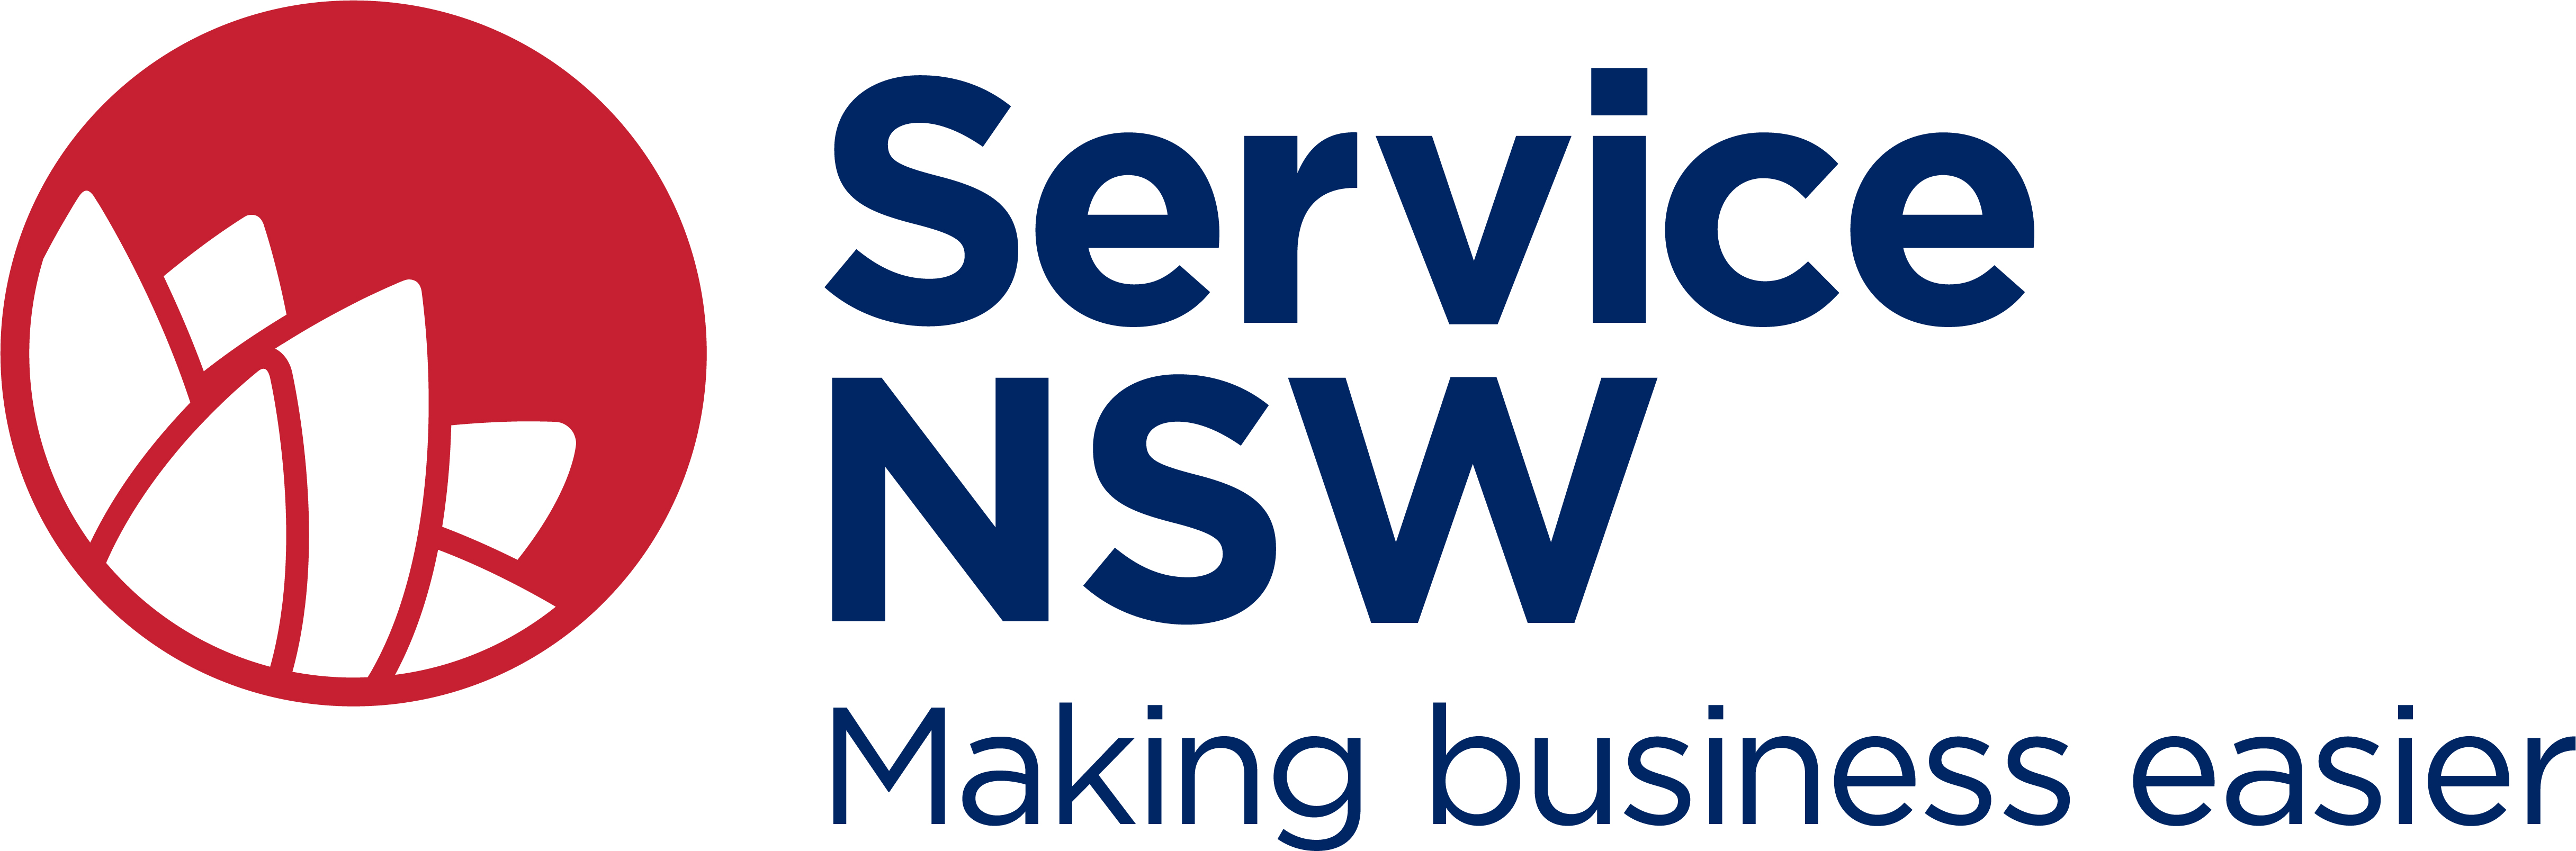 ServiceNSW_Brand Extension_MBE_HOR_RGB.jpg